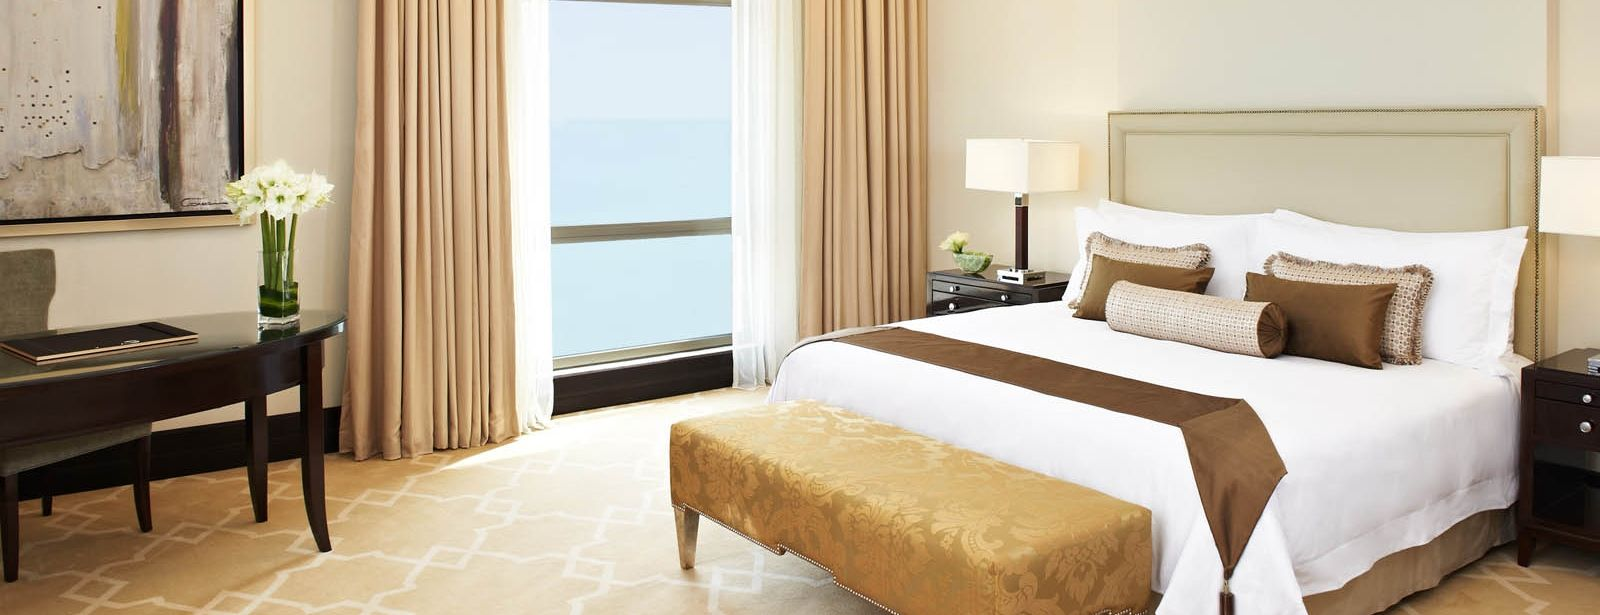 Empire Suite at The St. Regis Doha